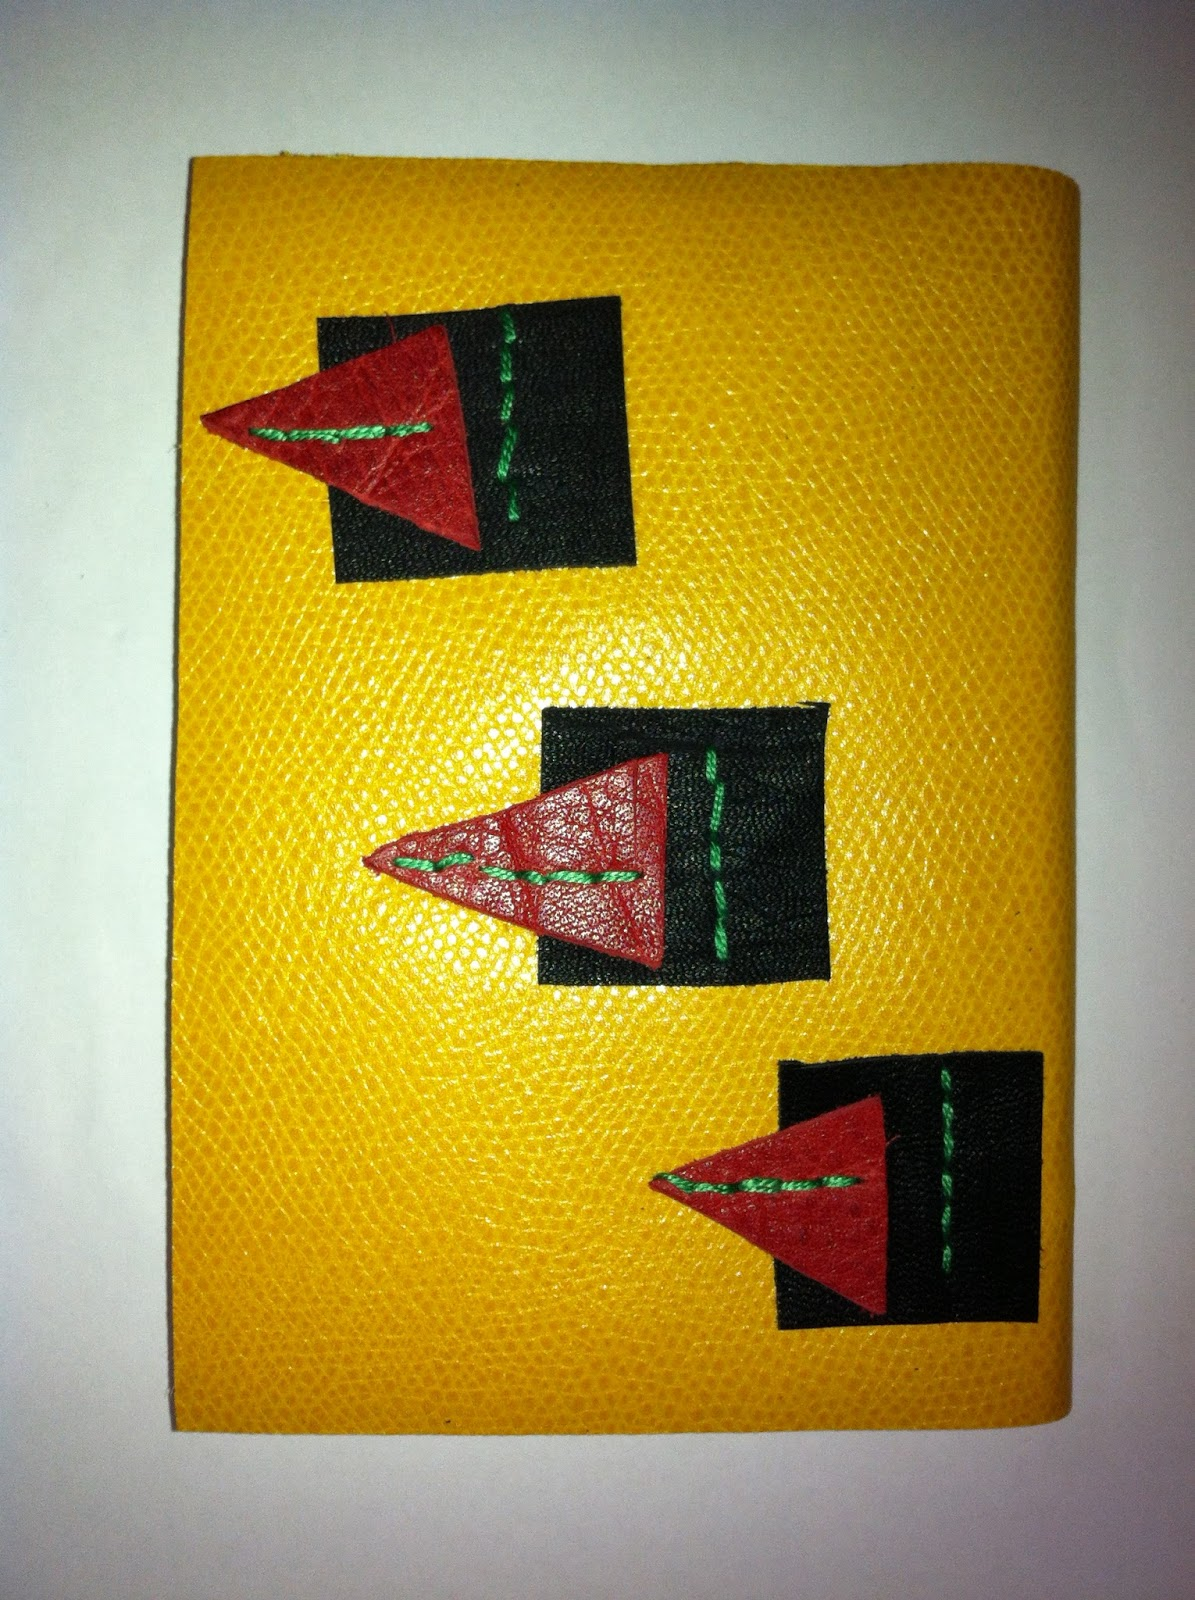 Meloleather Personalised Leather Book Workshop London 11/12